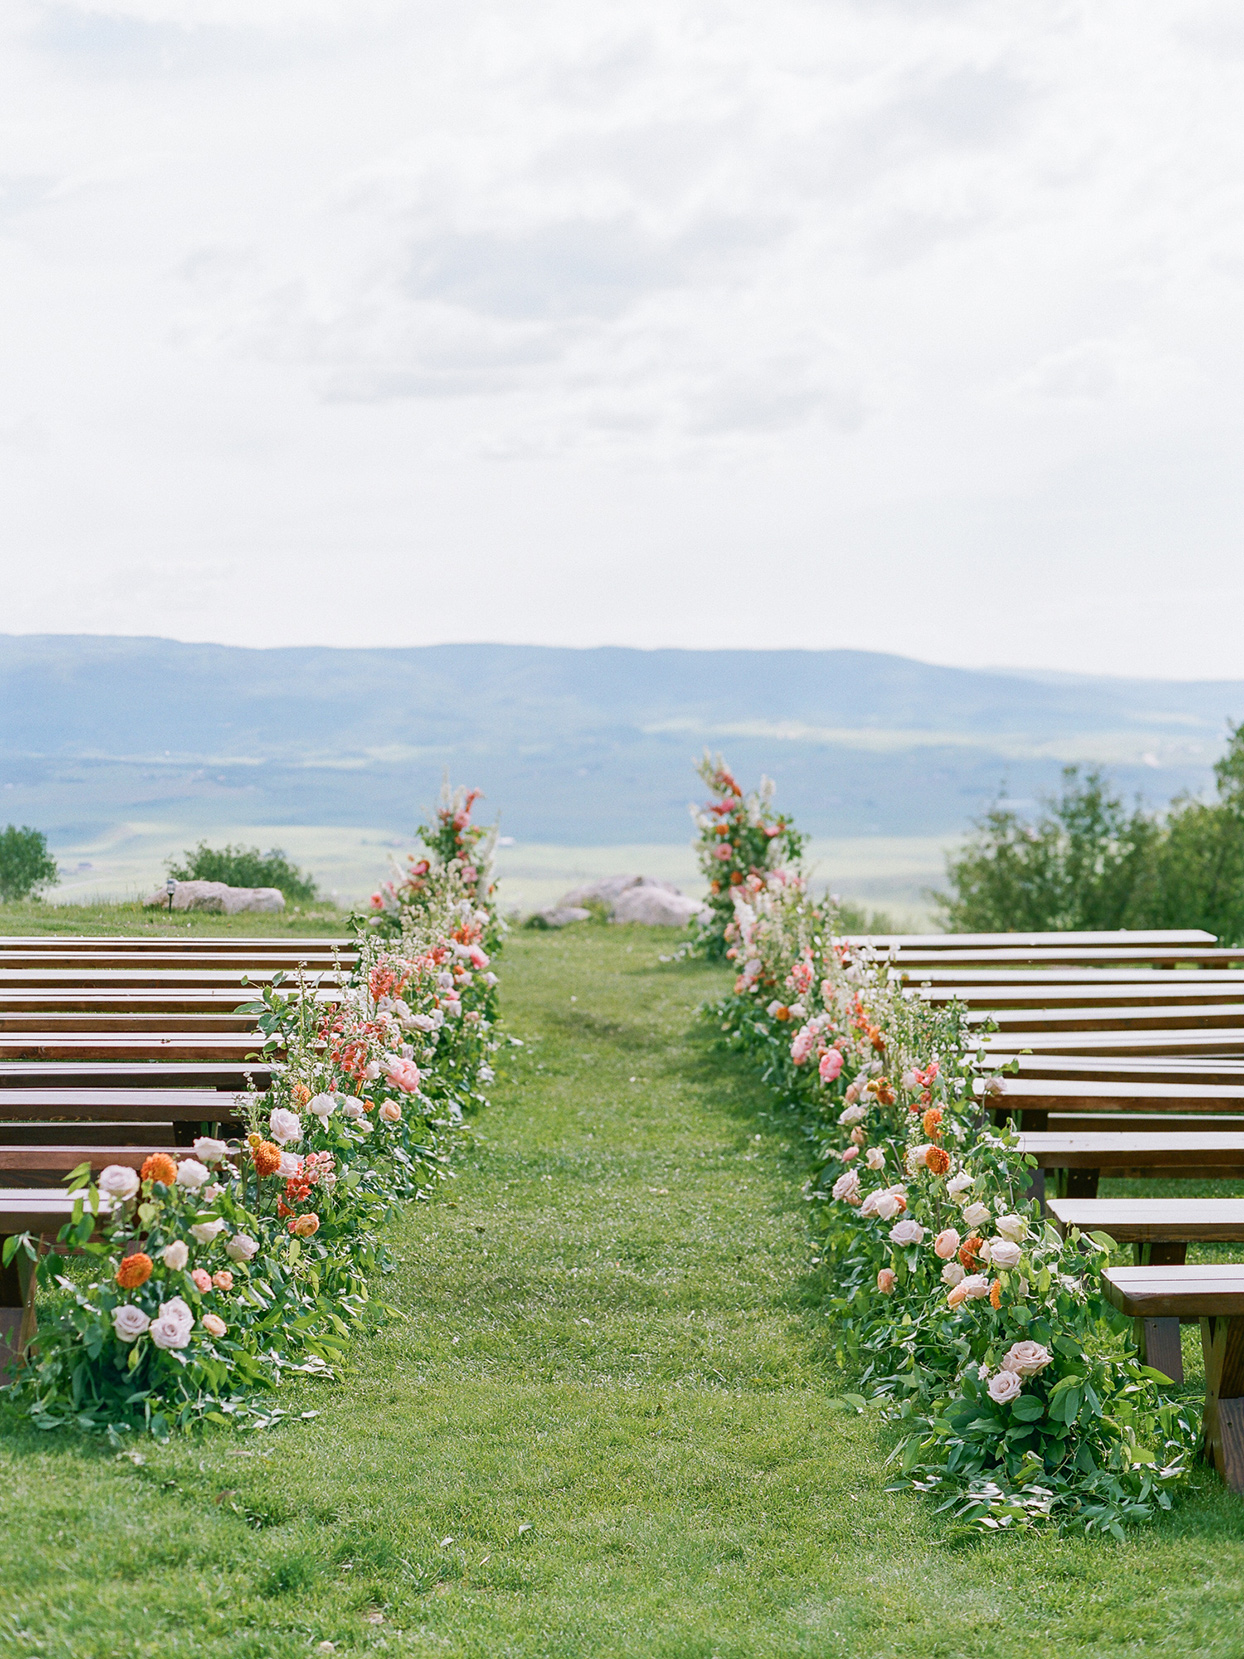 logan conor wedding ceremony location overlooking mountains